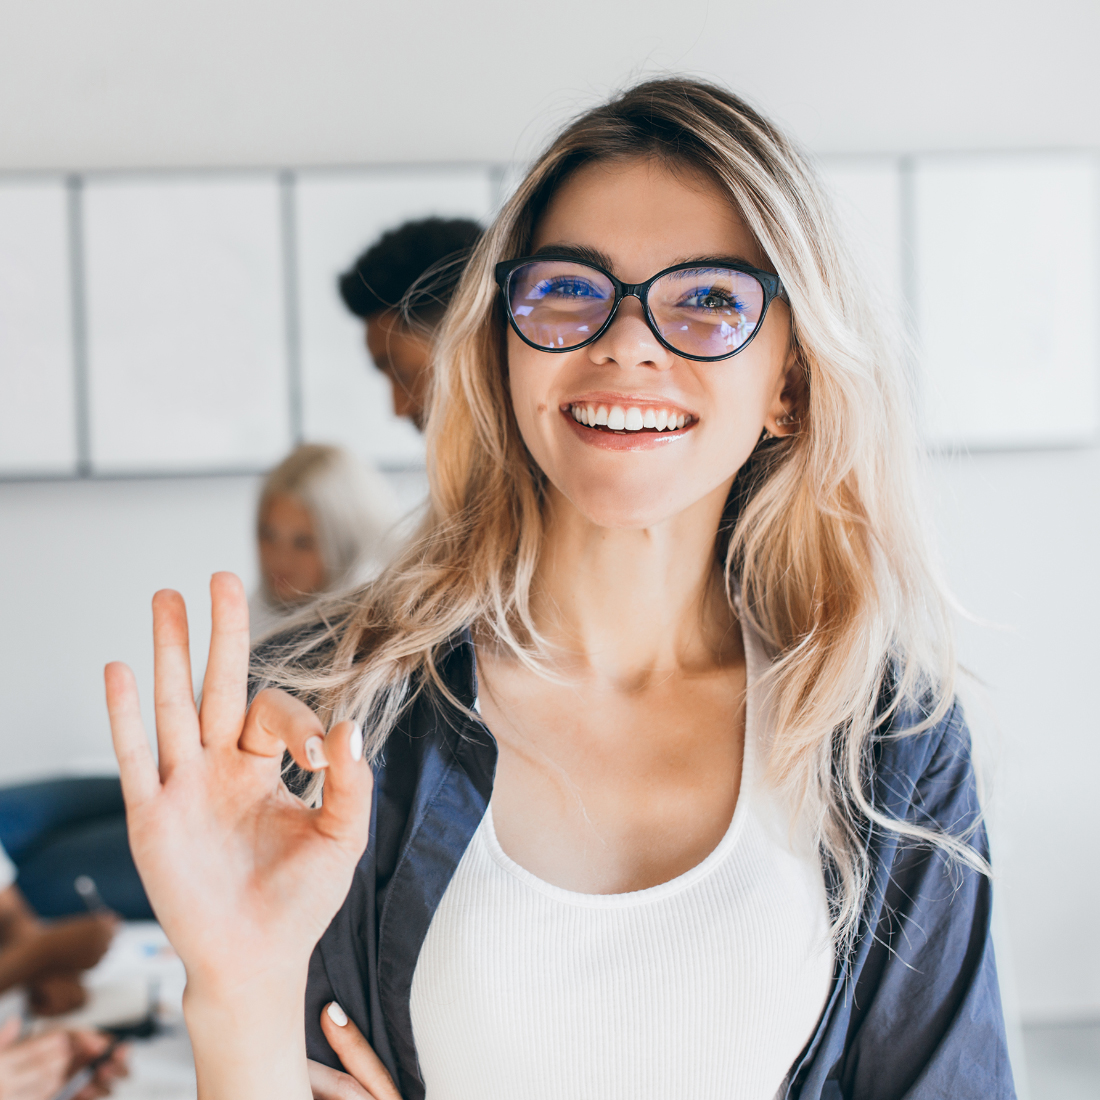 Business women giving the Magic Of A Marketing Mix: Best Practice Guide an a-okay